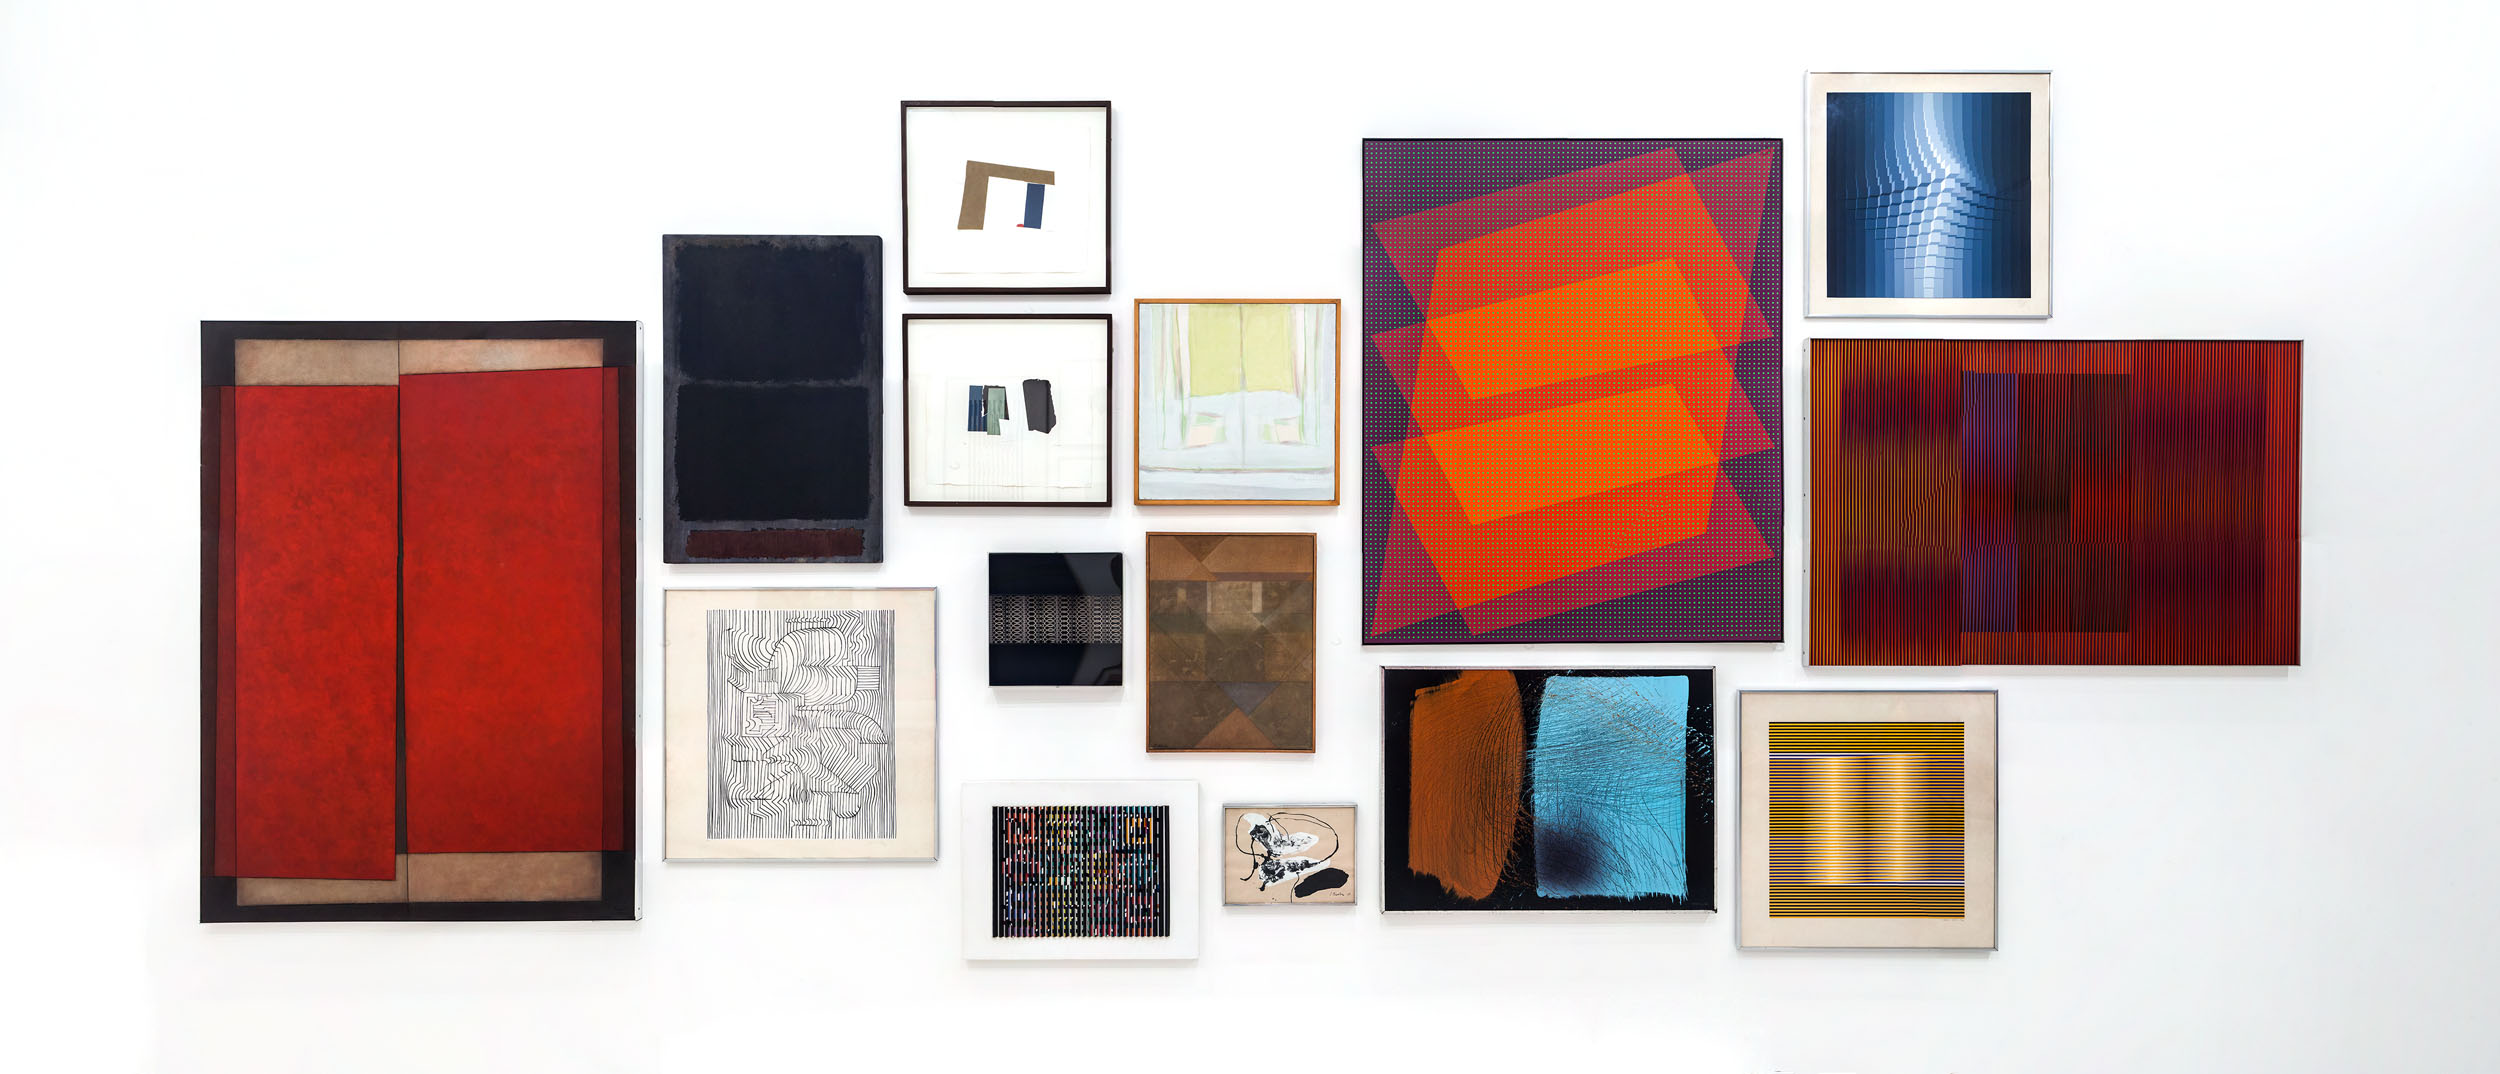 Documentation of wall B as it was during shooting. All artworks selected from the permanent collection of the Museo Tamayo. The two paintings in the middle were replaced by the screen for the installation